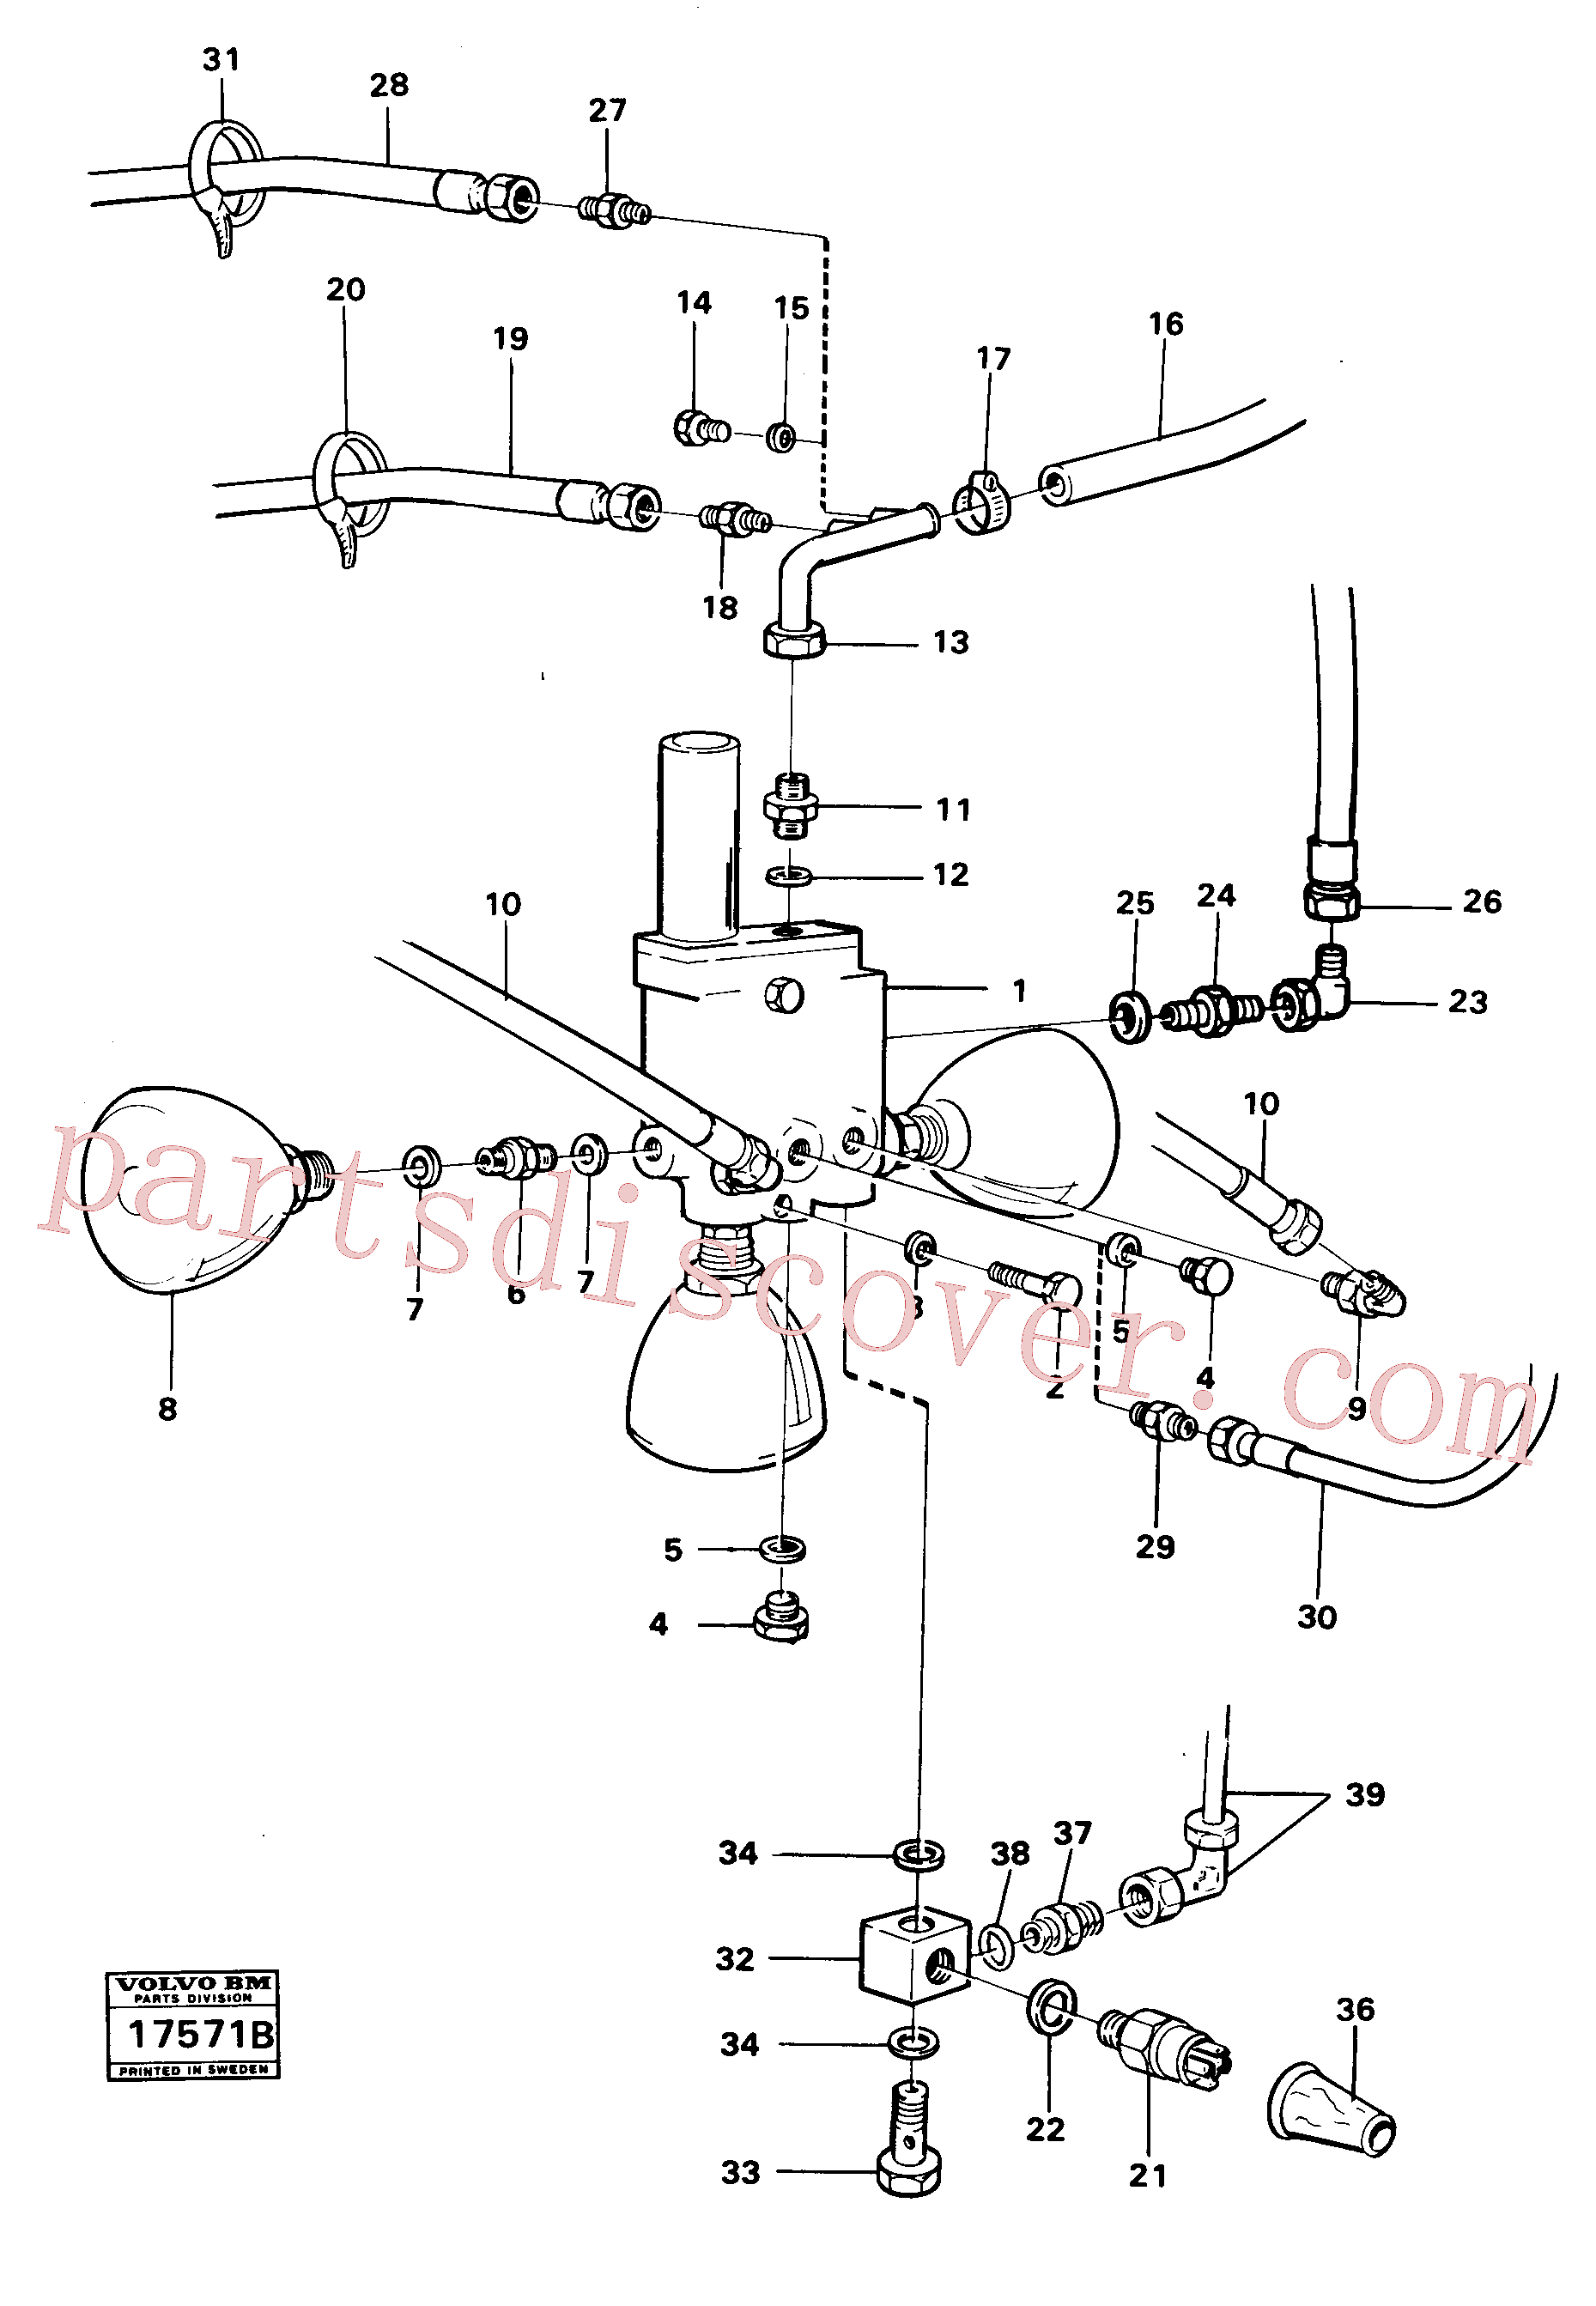 VOE948883 for Volvo Valve with fitting parts(17571B assembly)